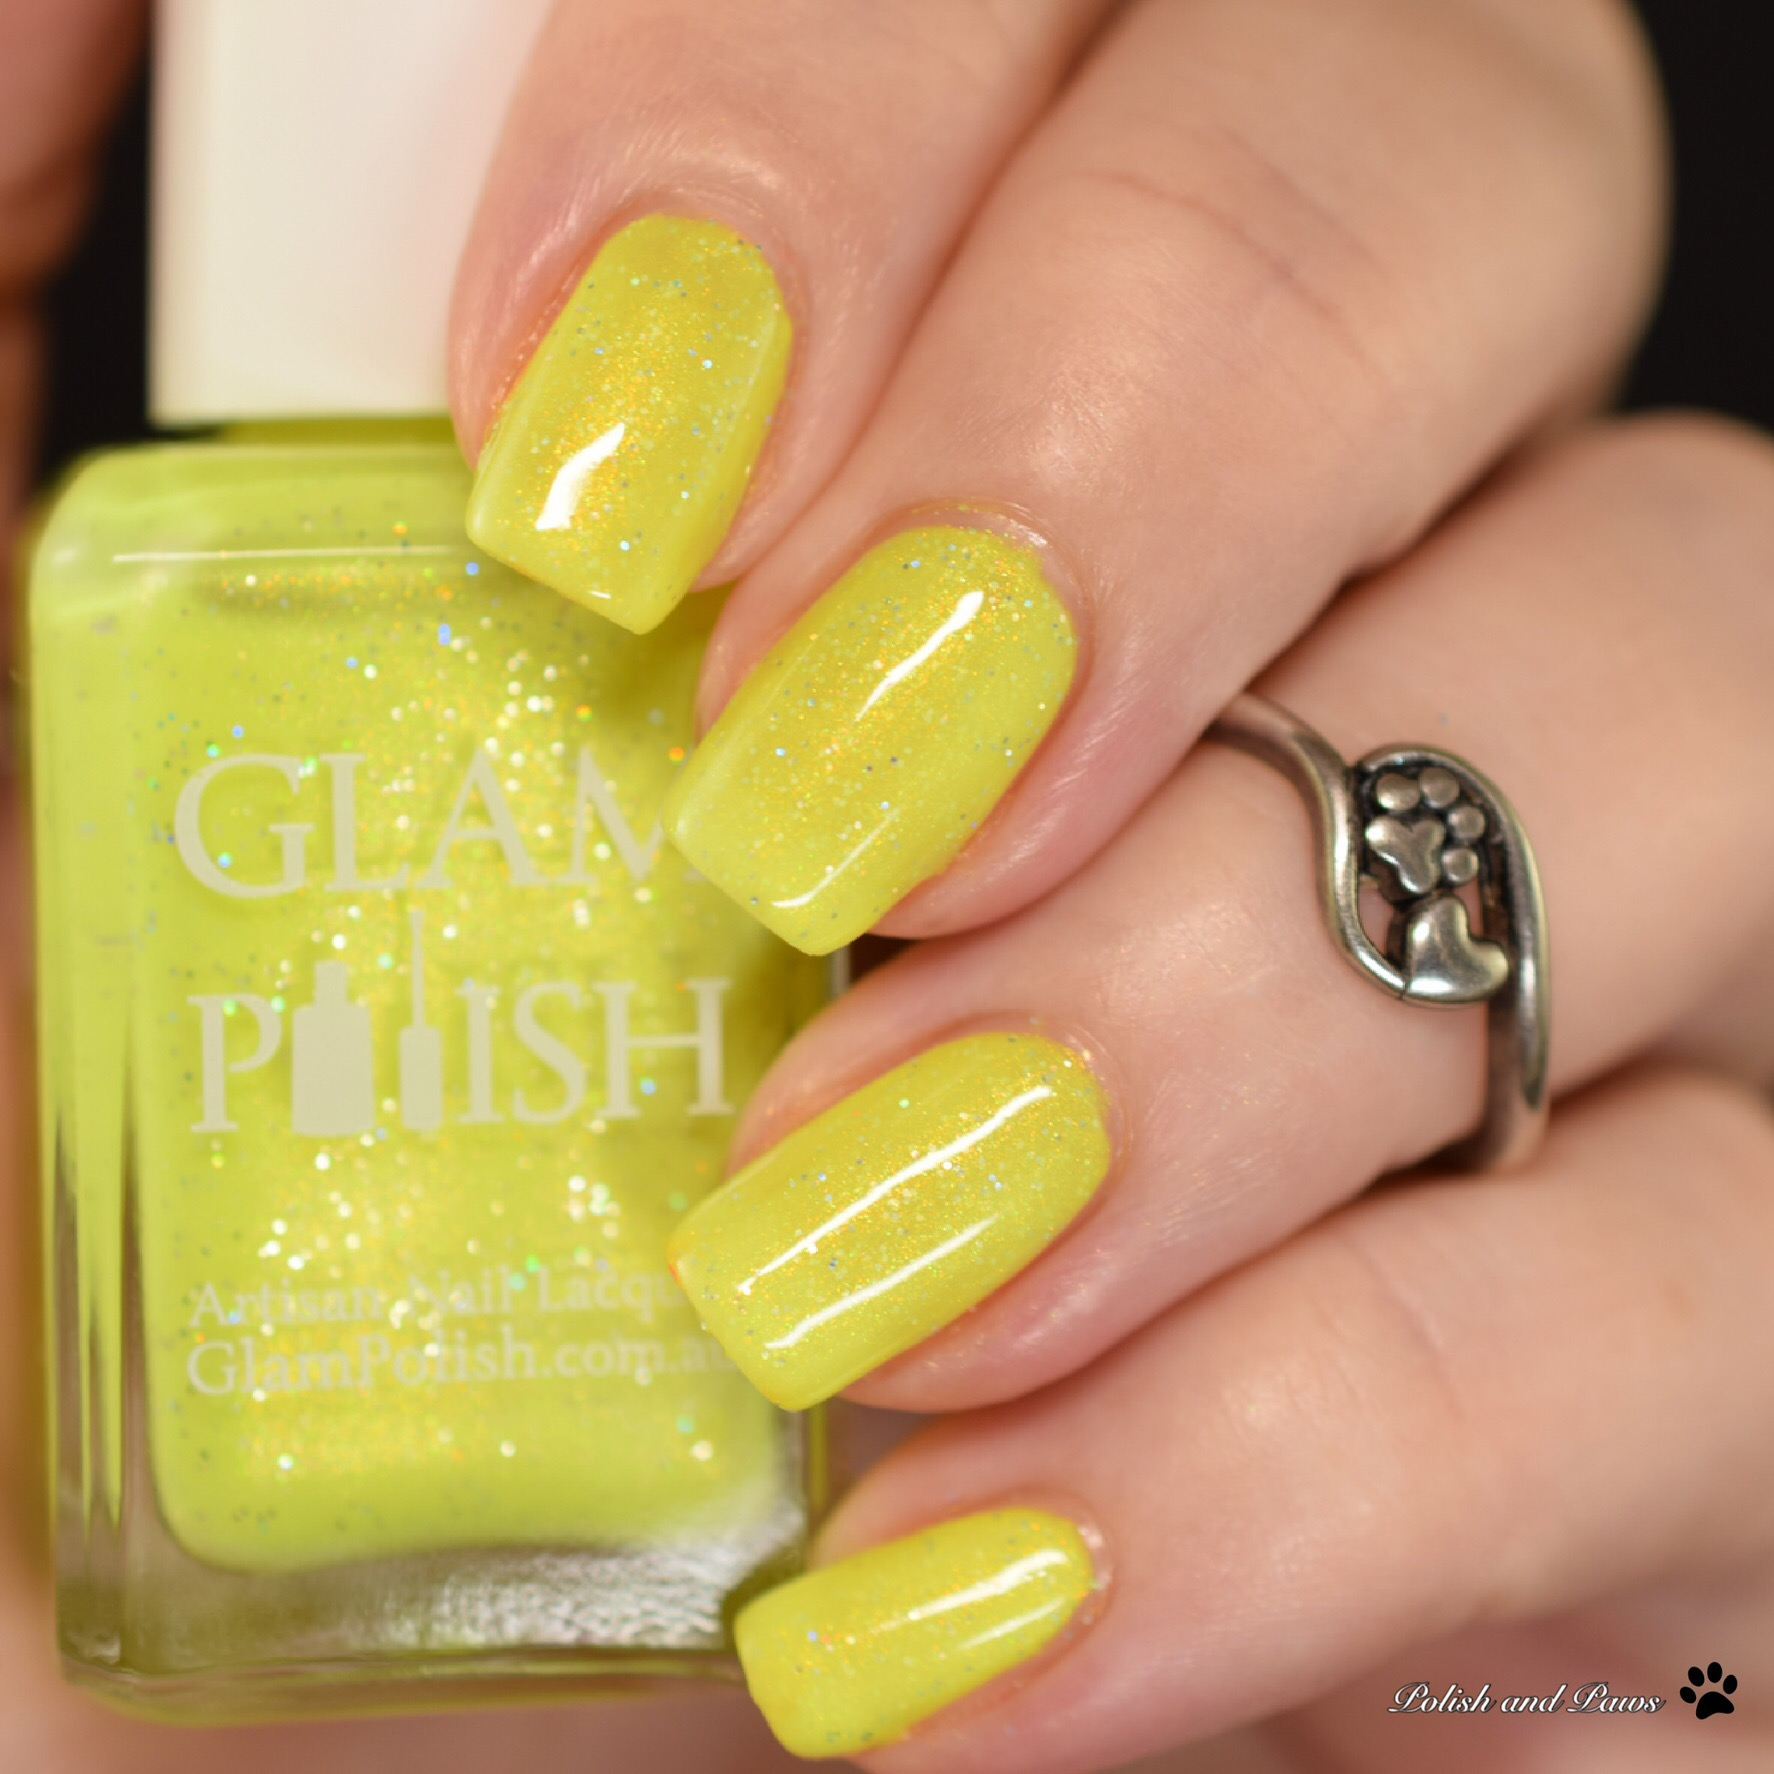 Glam Polish Pizzazz